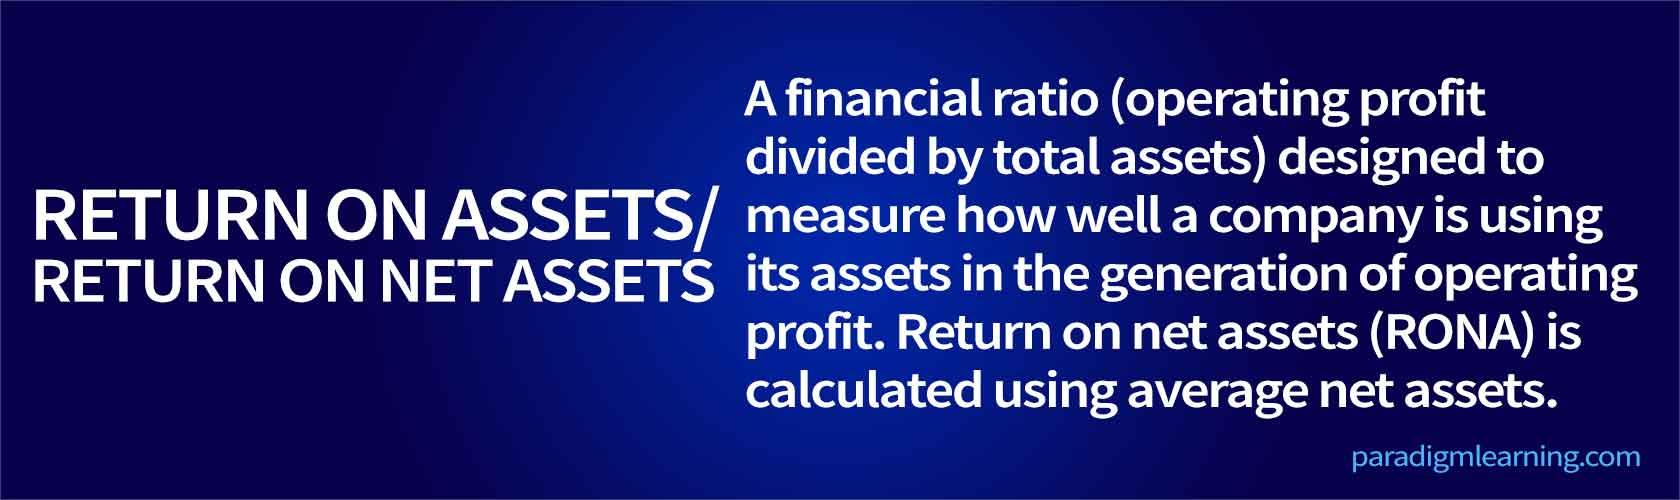 A financial ratio (operating profit divided by total assets) designed to measure how well a company is using its assets in the generation of operating profit. Return on net assets (RONA) is calculated using average net assets.